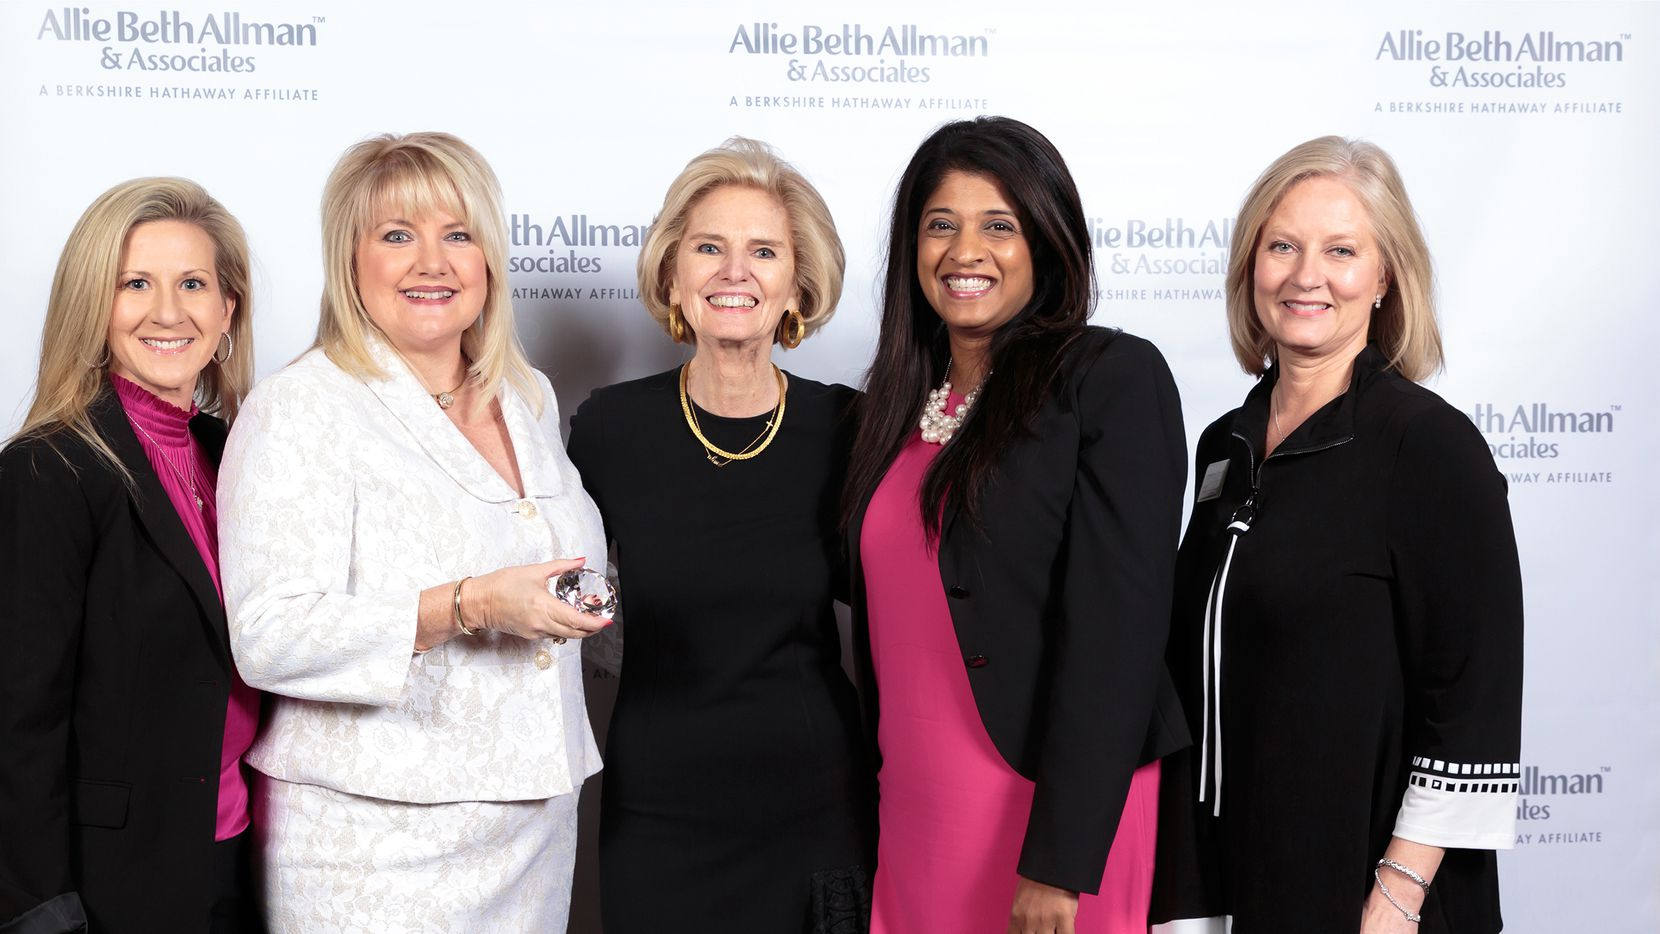 President/CEO Allie Beth Allman (center) congratulates the Dona Robinson Group for being named Top Producing Team for 2019.